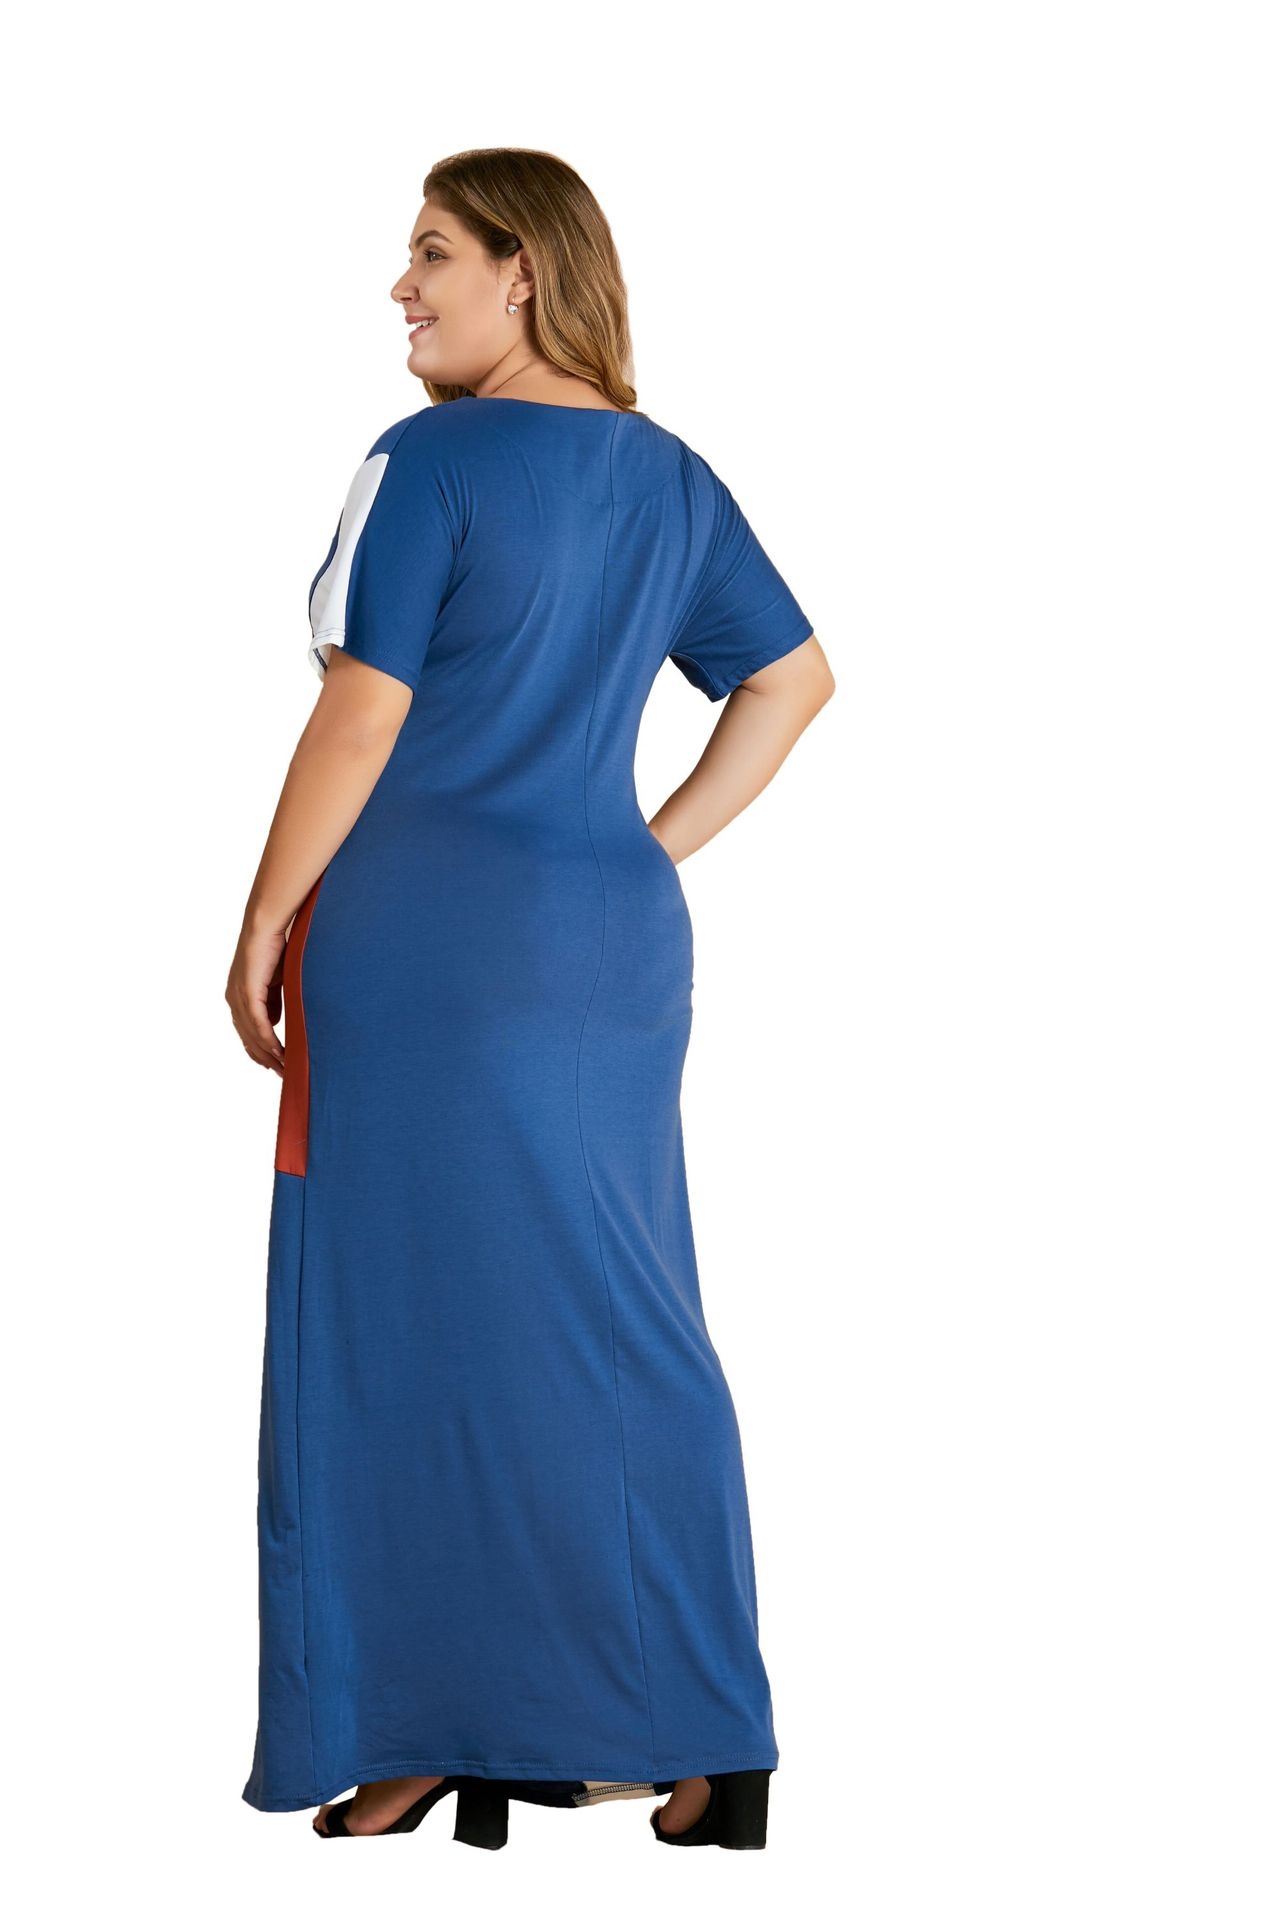 Oversized Plus Size Large Big L 3XL 4XL Long Maxi T Shirt Dress Women Loose Casual Robe Dresses 2019 Summer Fashion Clothing in Dresses from Women 39 s Clothing